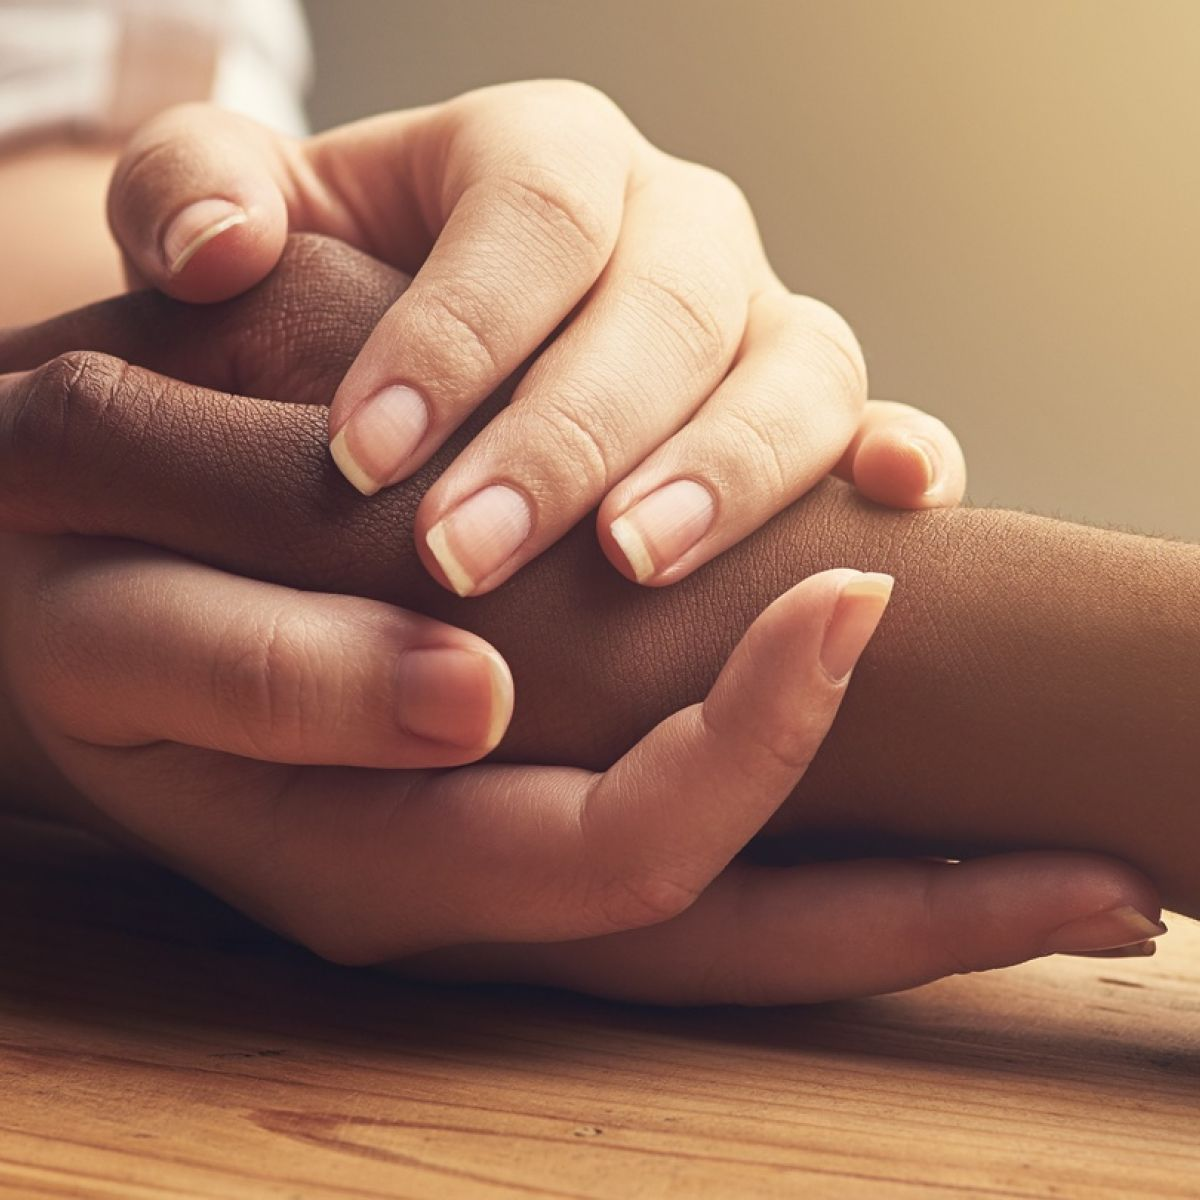 The complexities of trying to forgive others